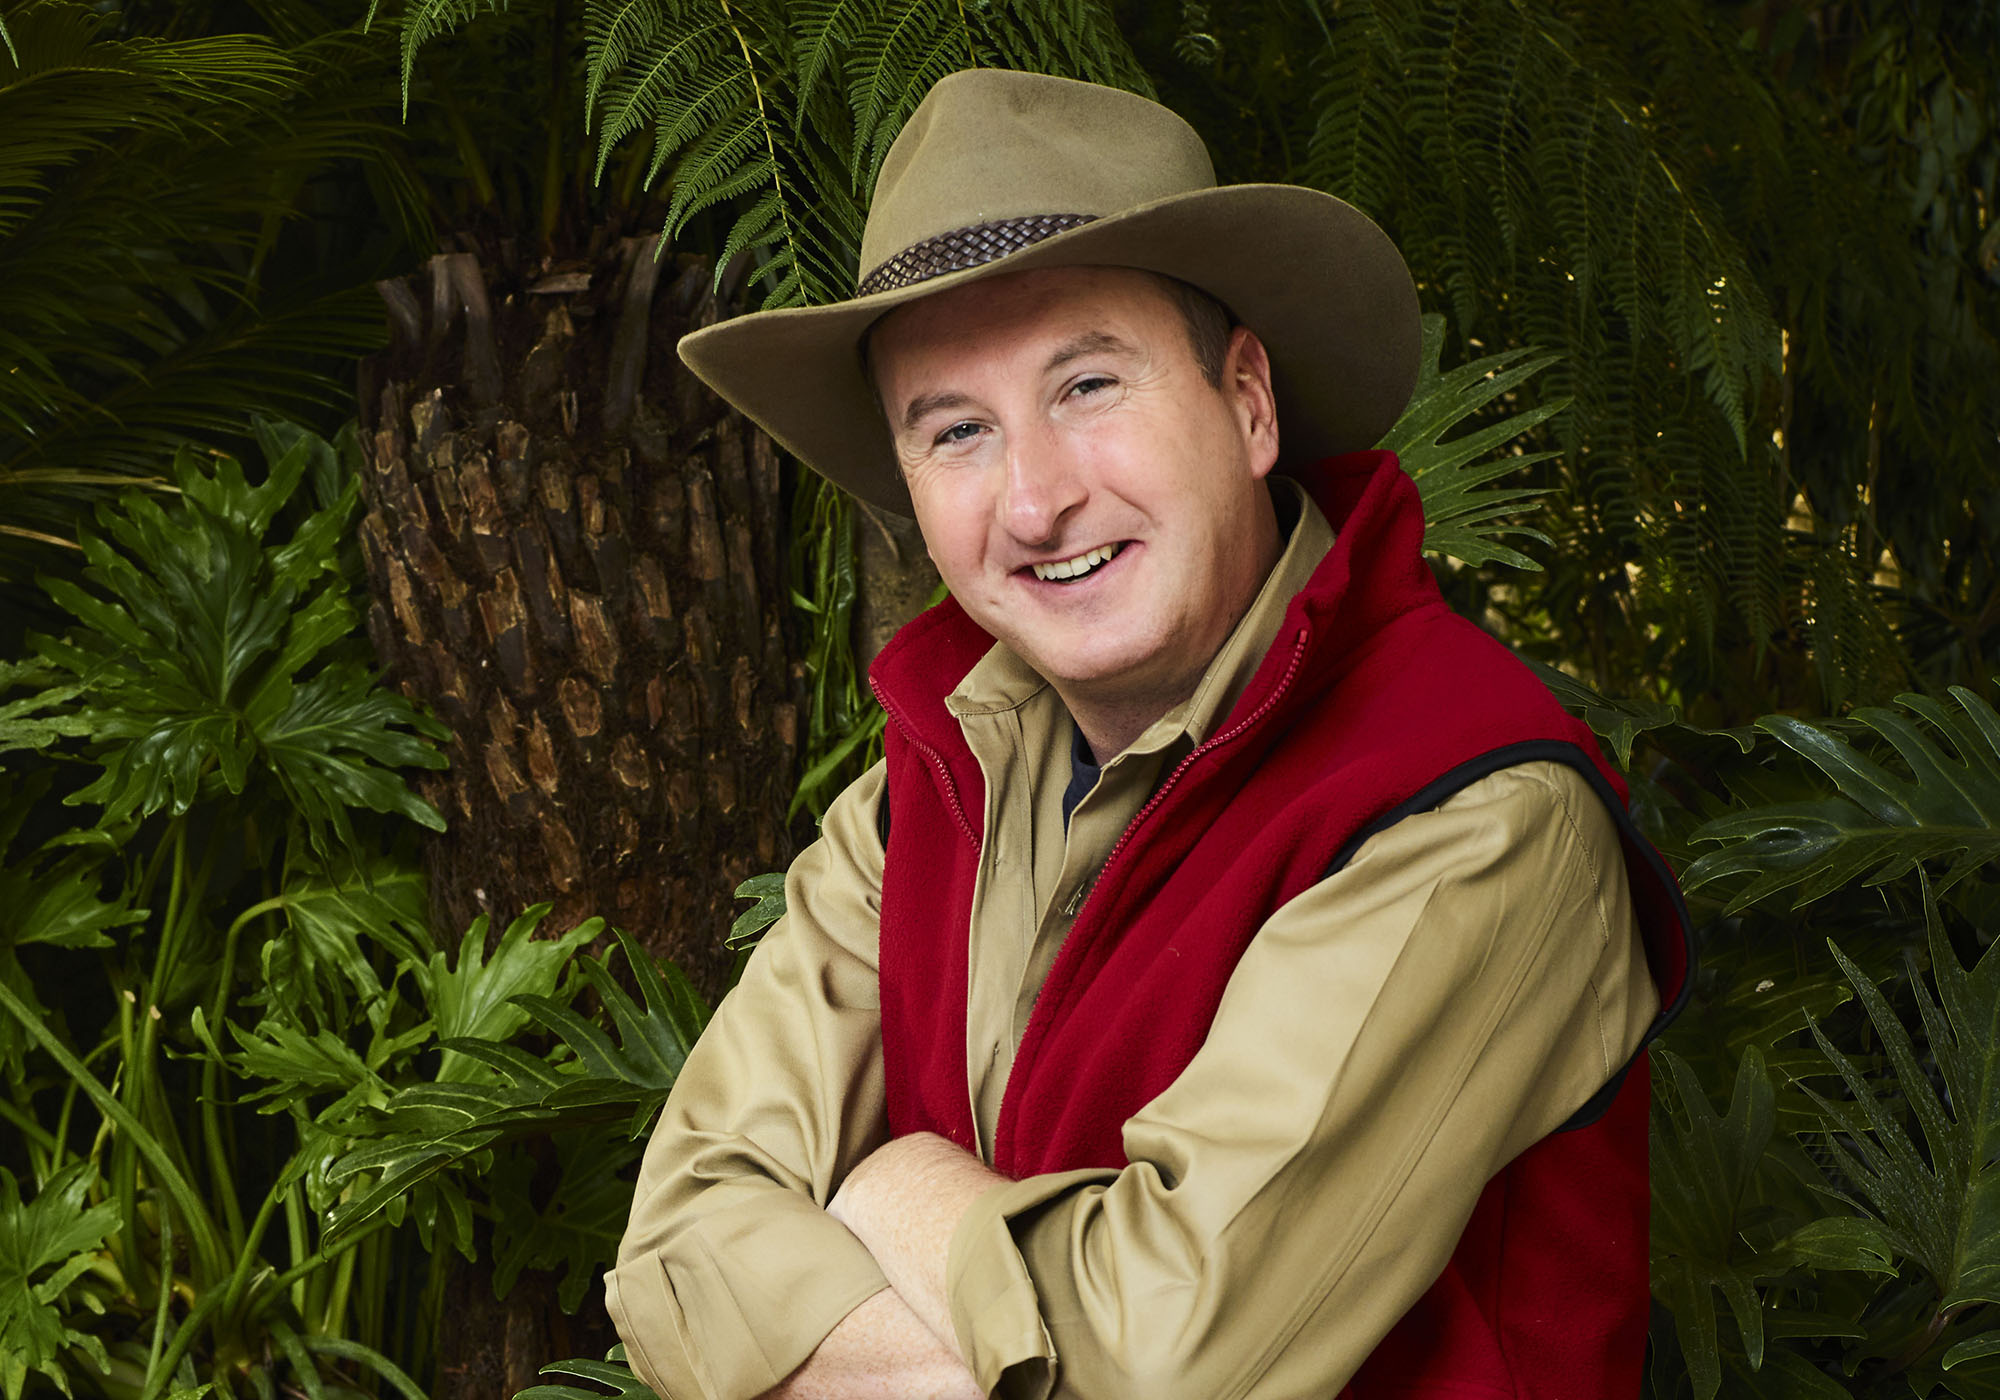 Coronation Street star Andrew Whyment tipped to make I'm A Celeb history as fans praise 'GENIUS' decision to put Kirk actor on